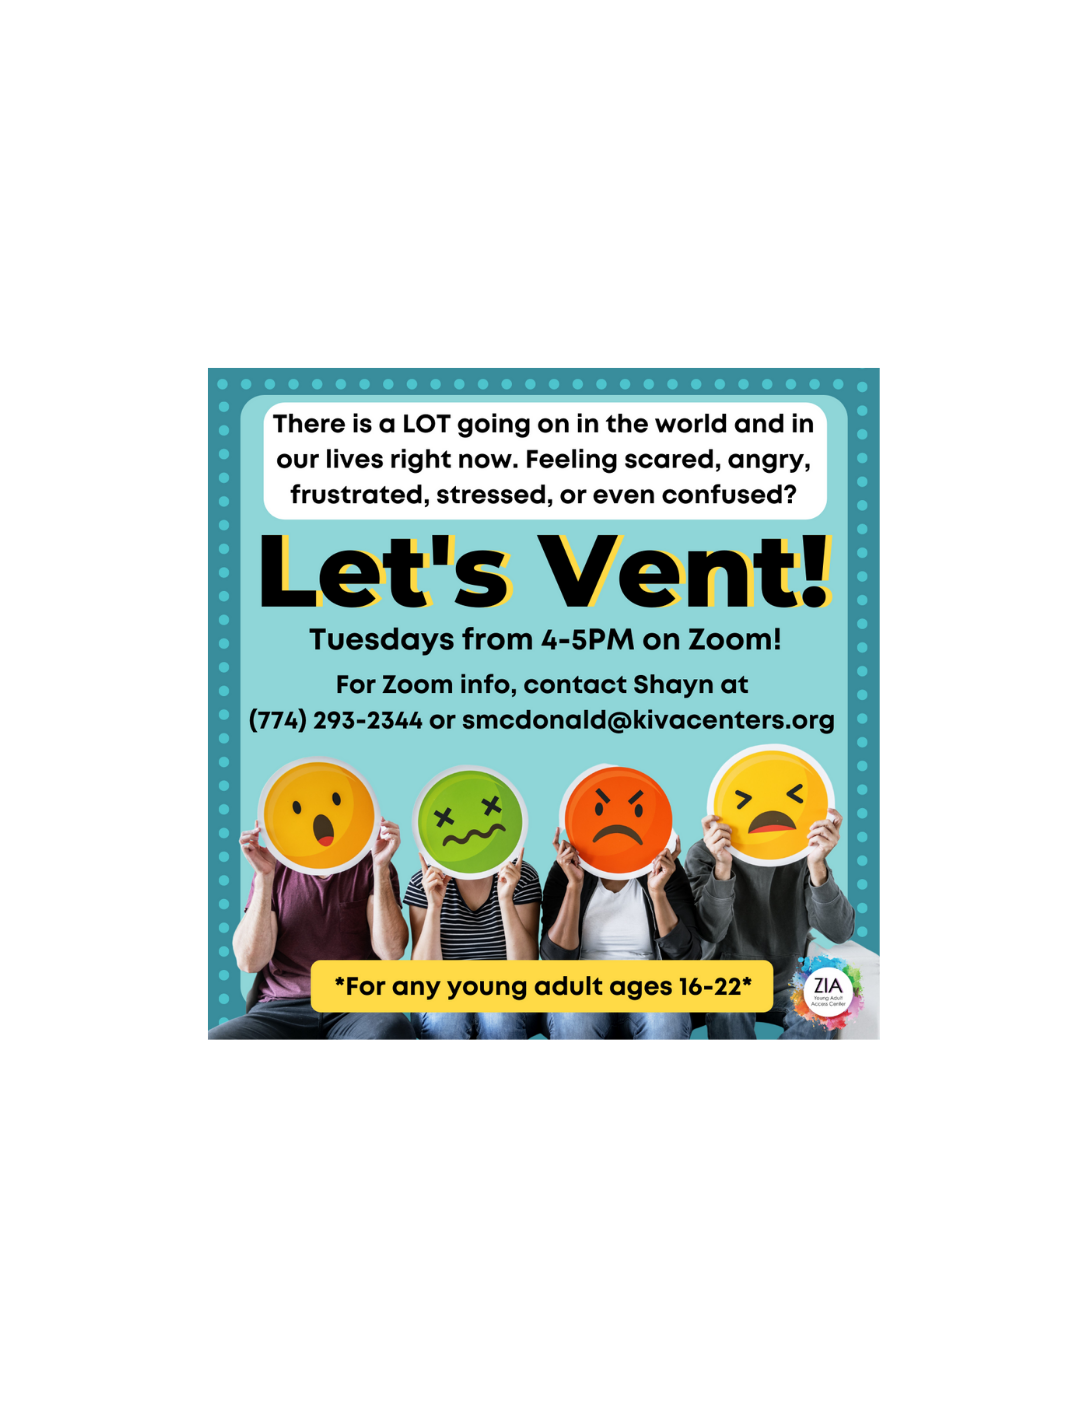 Let's Vent! Virtual Group Hosted by Zia Young Adult Access Center